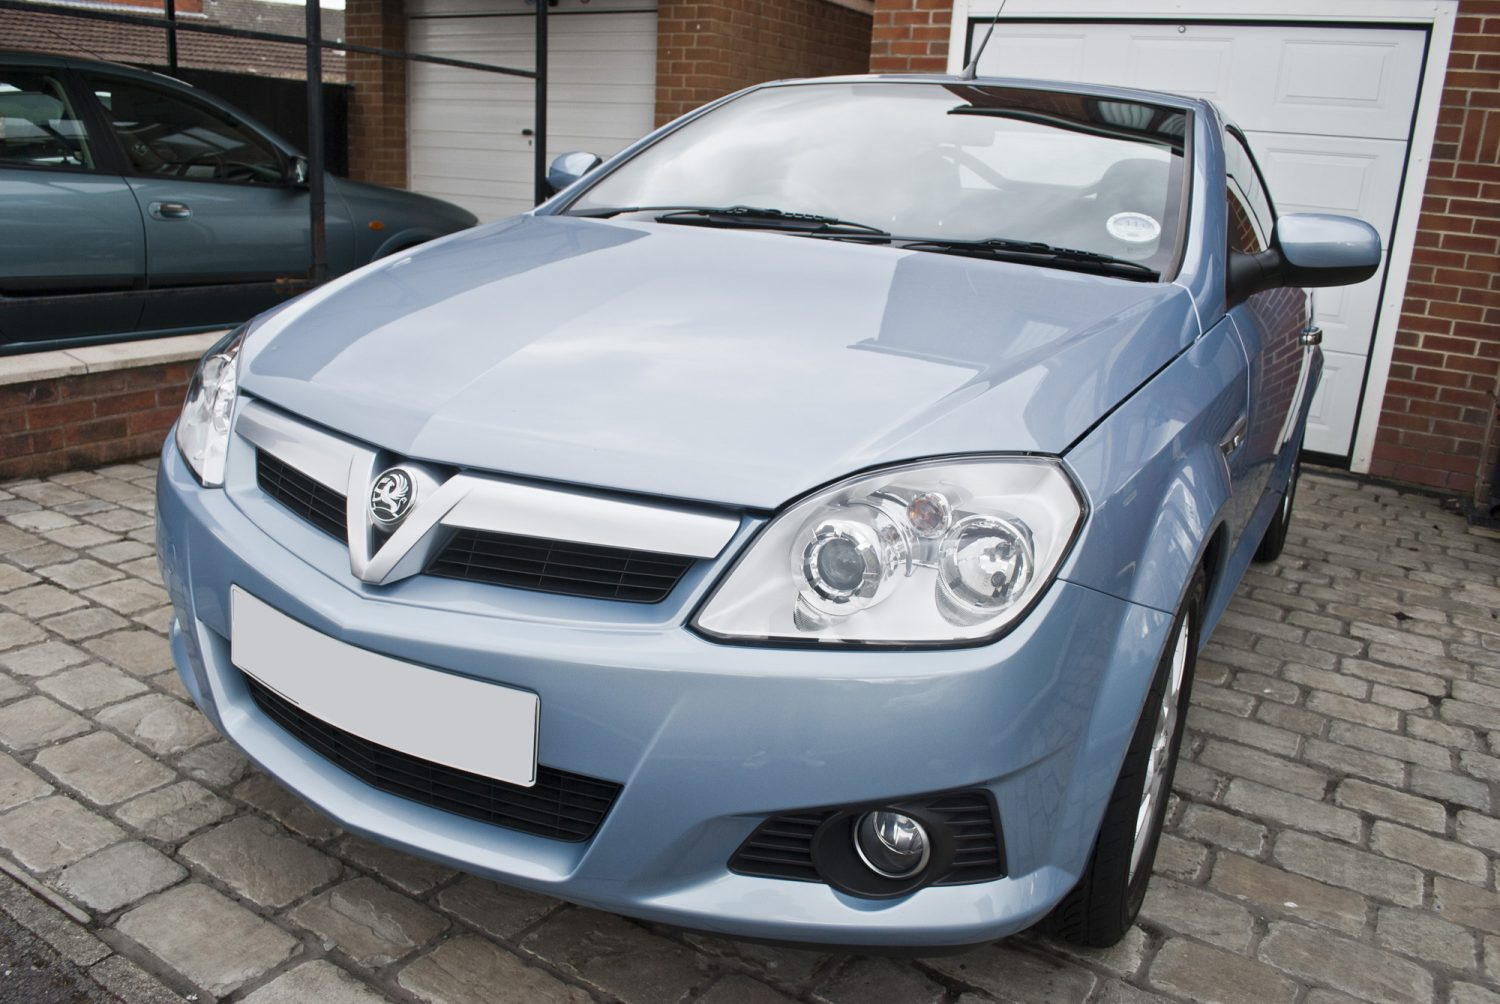 Vauxhall Tigra Detailed by DWR Detailing